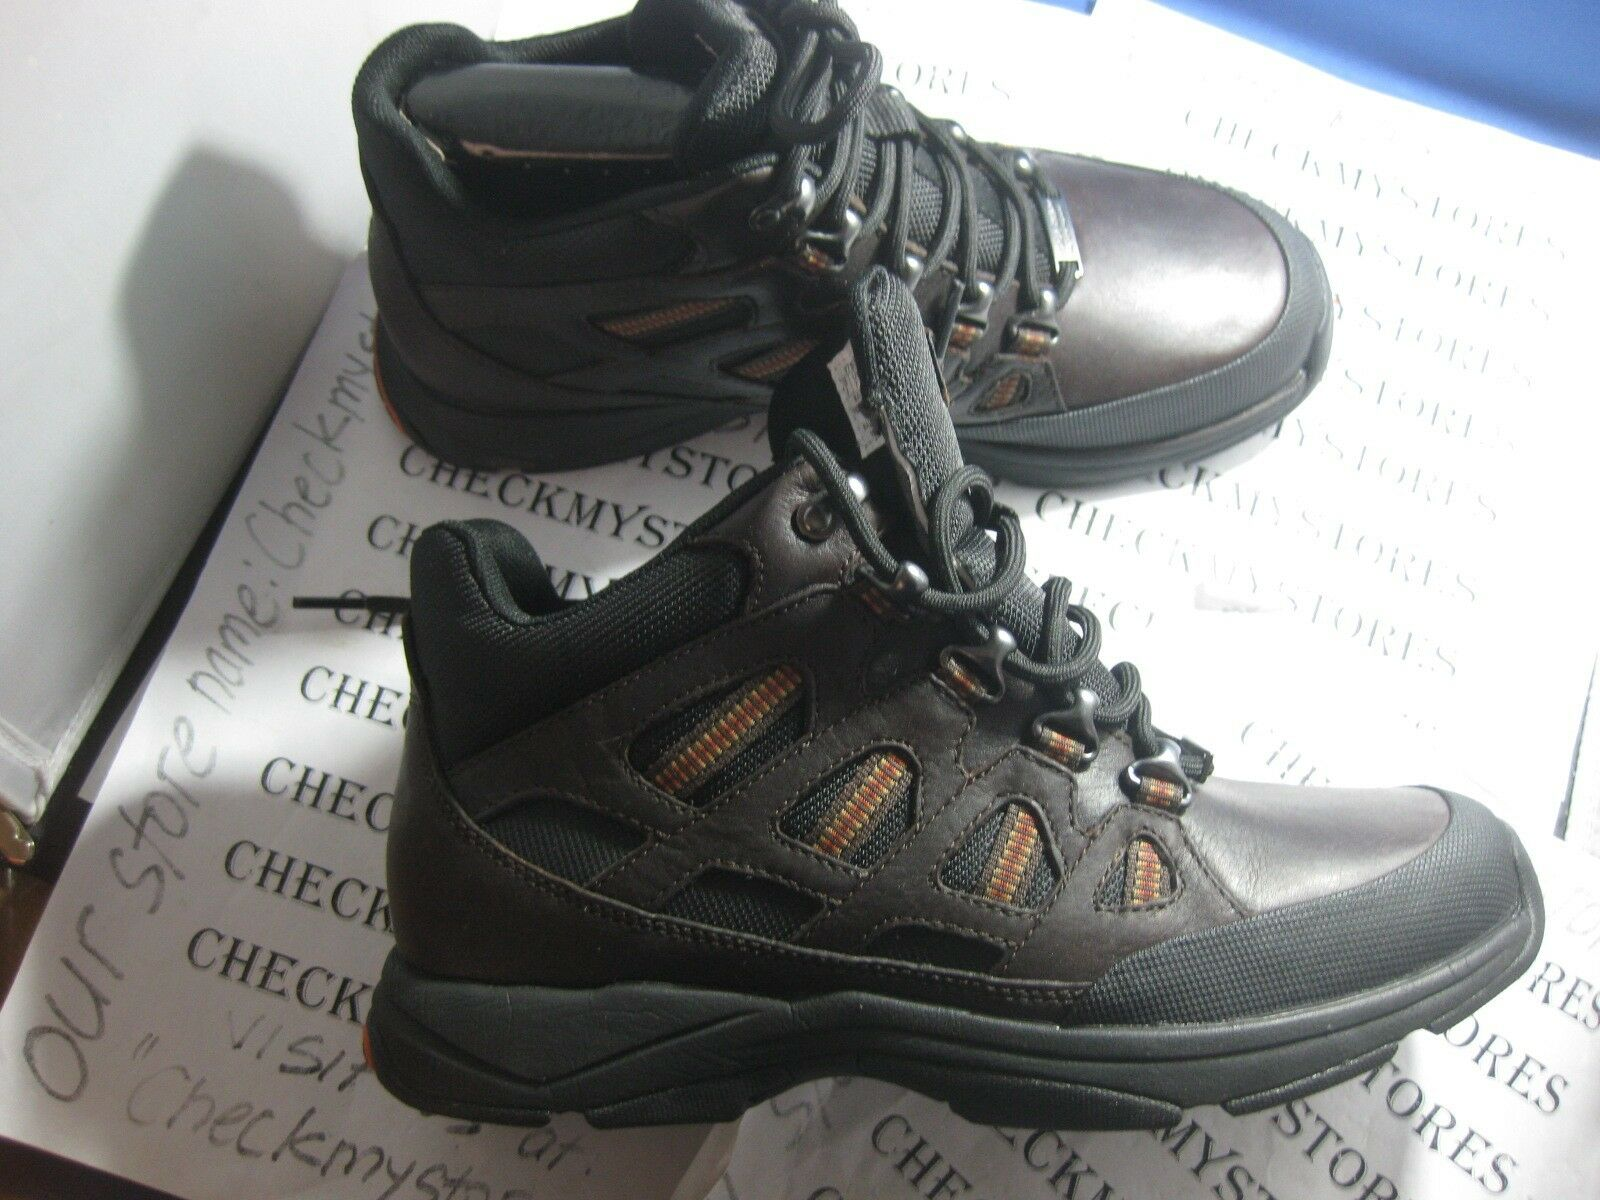 NEW   Rockport   KELLIX V75442 PREMIUM LEATHER WATERPROOF HIKING CASUAL BOOT